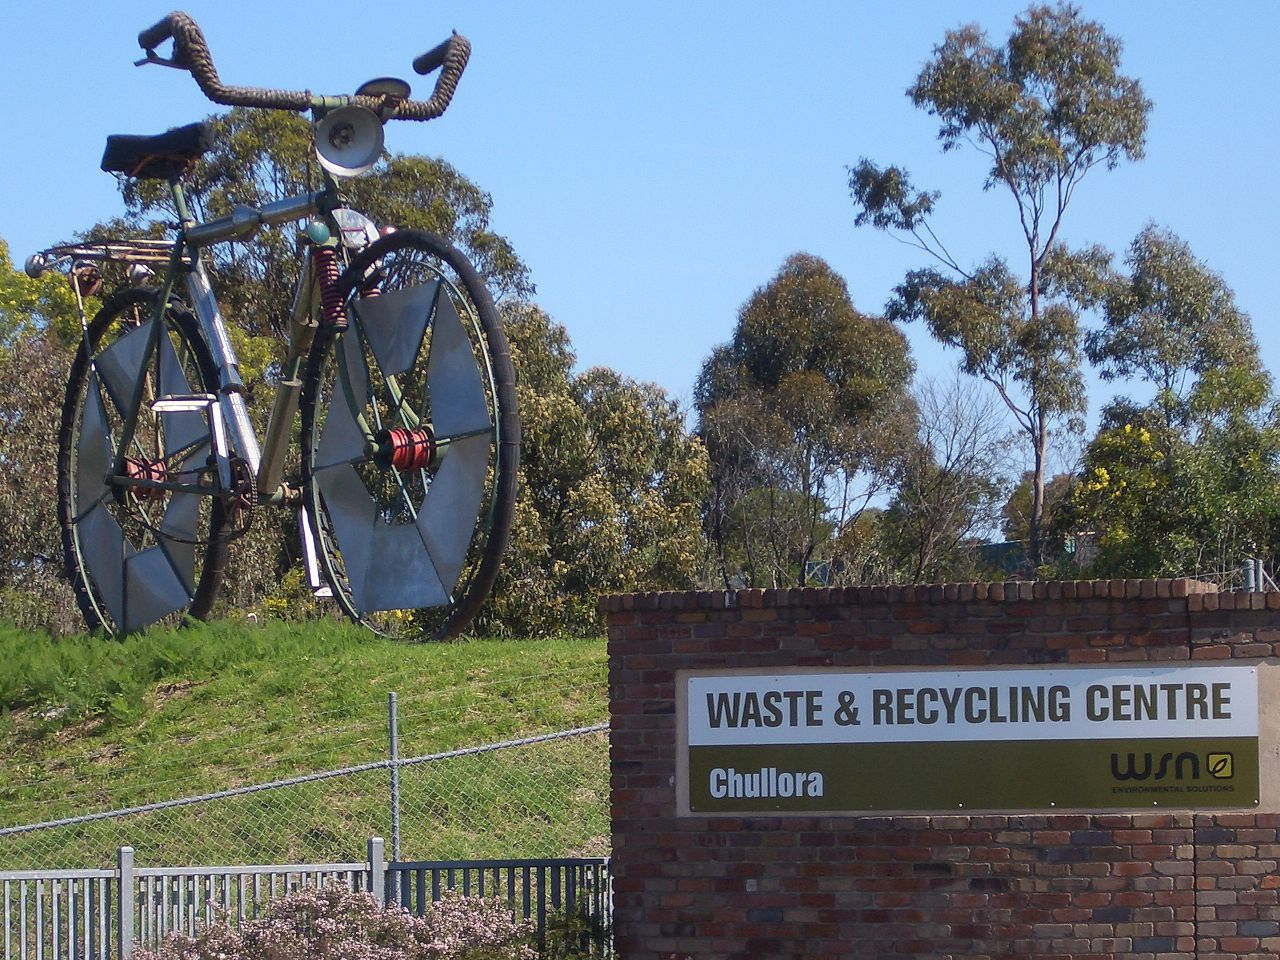 The Big Bicycle made out of recycled materials outside a recycling centre